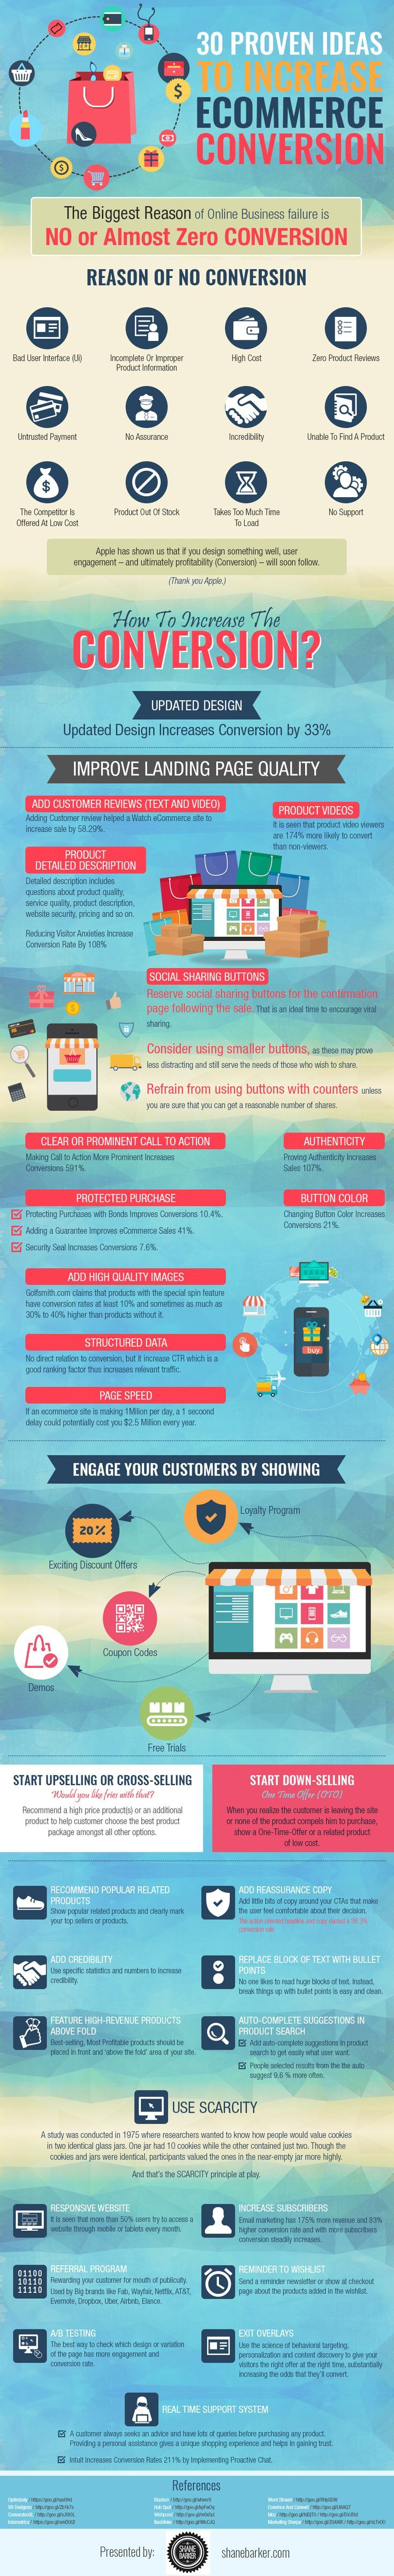 """ECOMMERCE - """"30 Proven Ideas to Increase eCommerce Conversion #Infographic #e-Commerce #Marketing."""""""